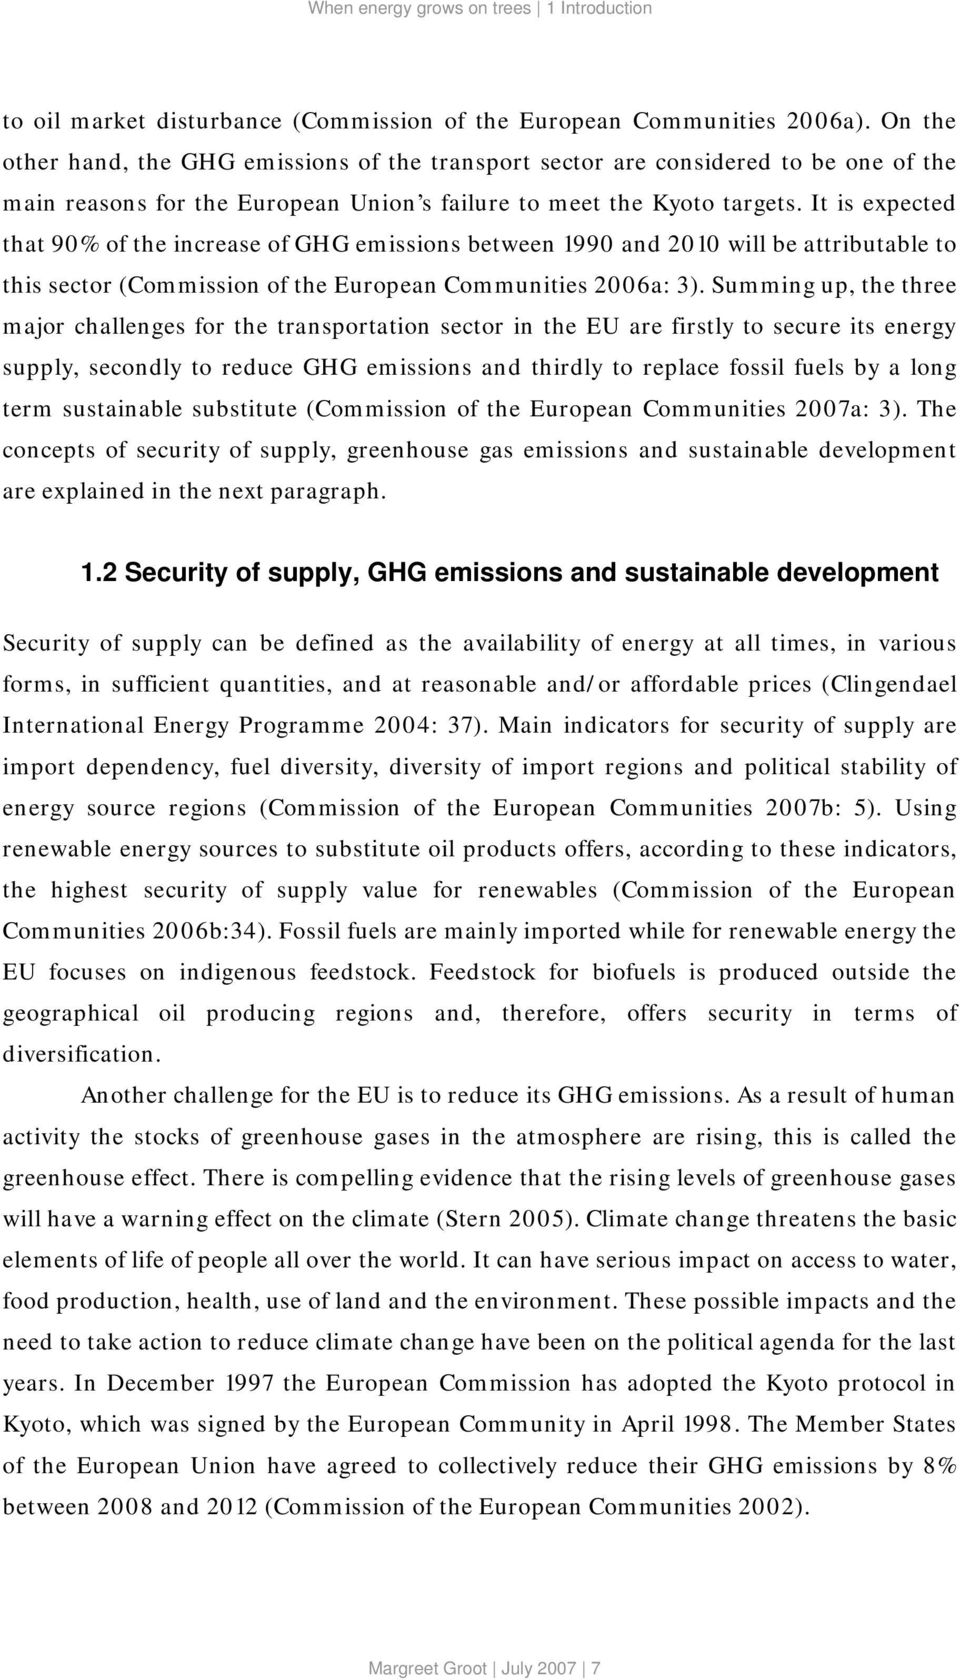 It is expected that 90% of the increase of GHG emissions between 1990 and 2010 will be attributable to this sector (Commission of the European Communities 2006a: 3).